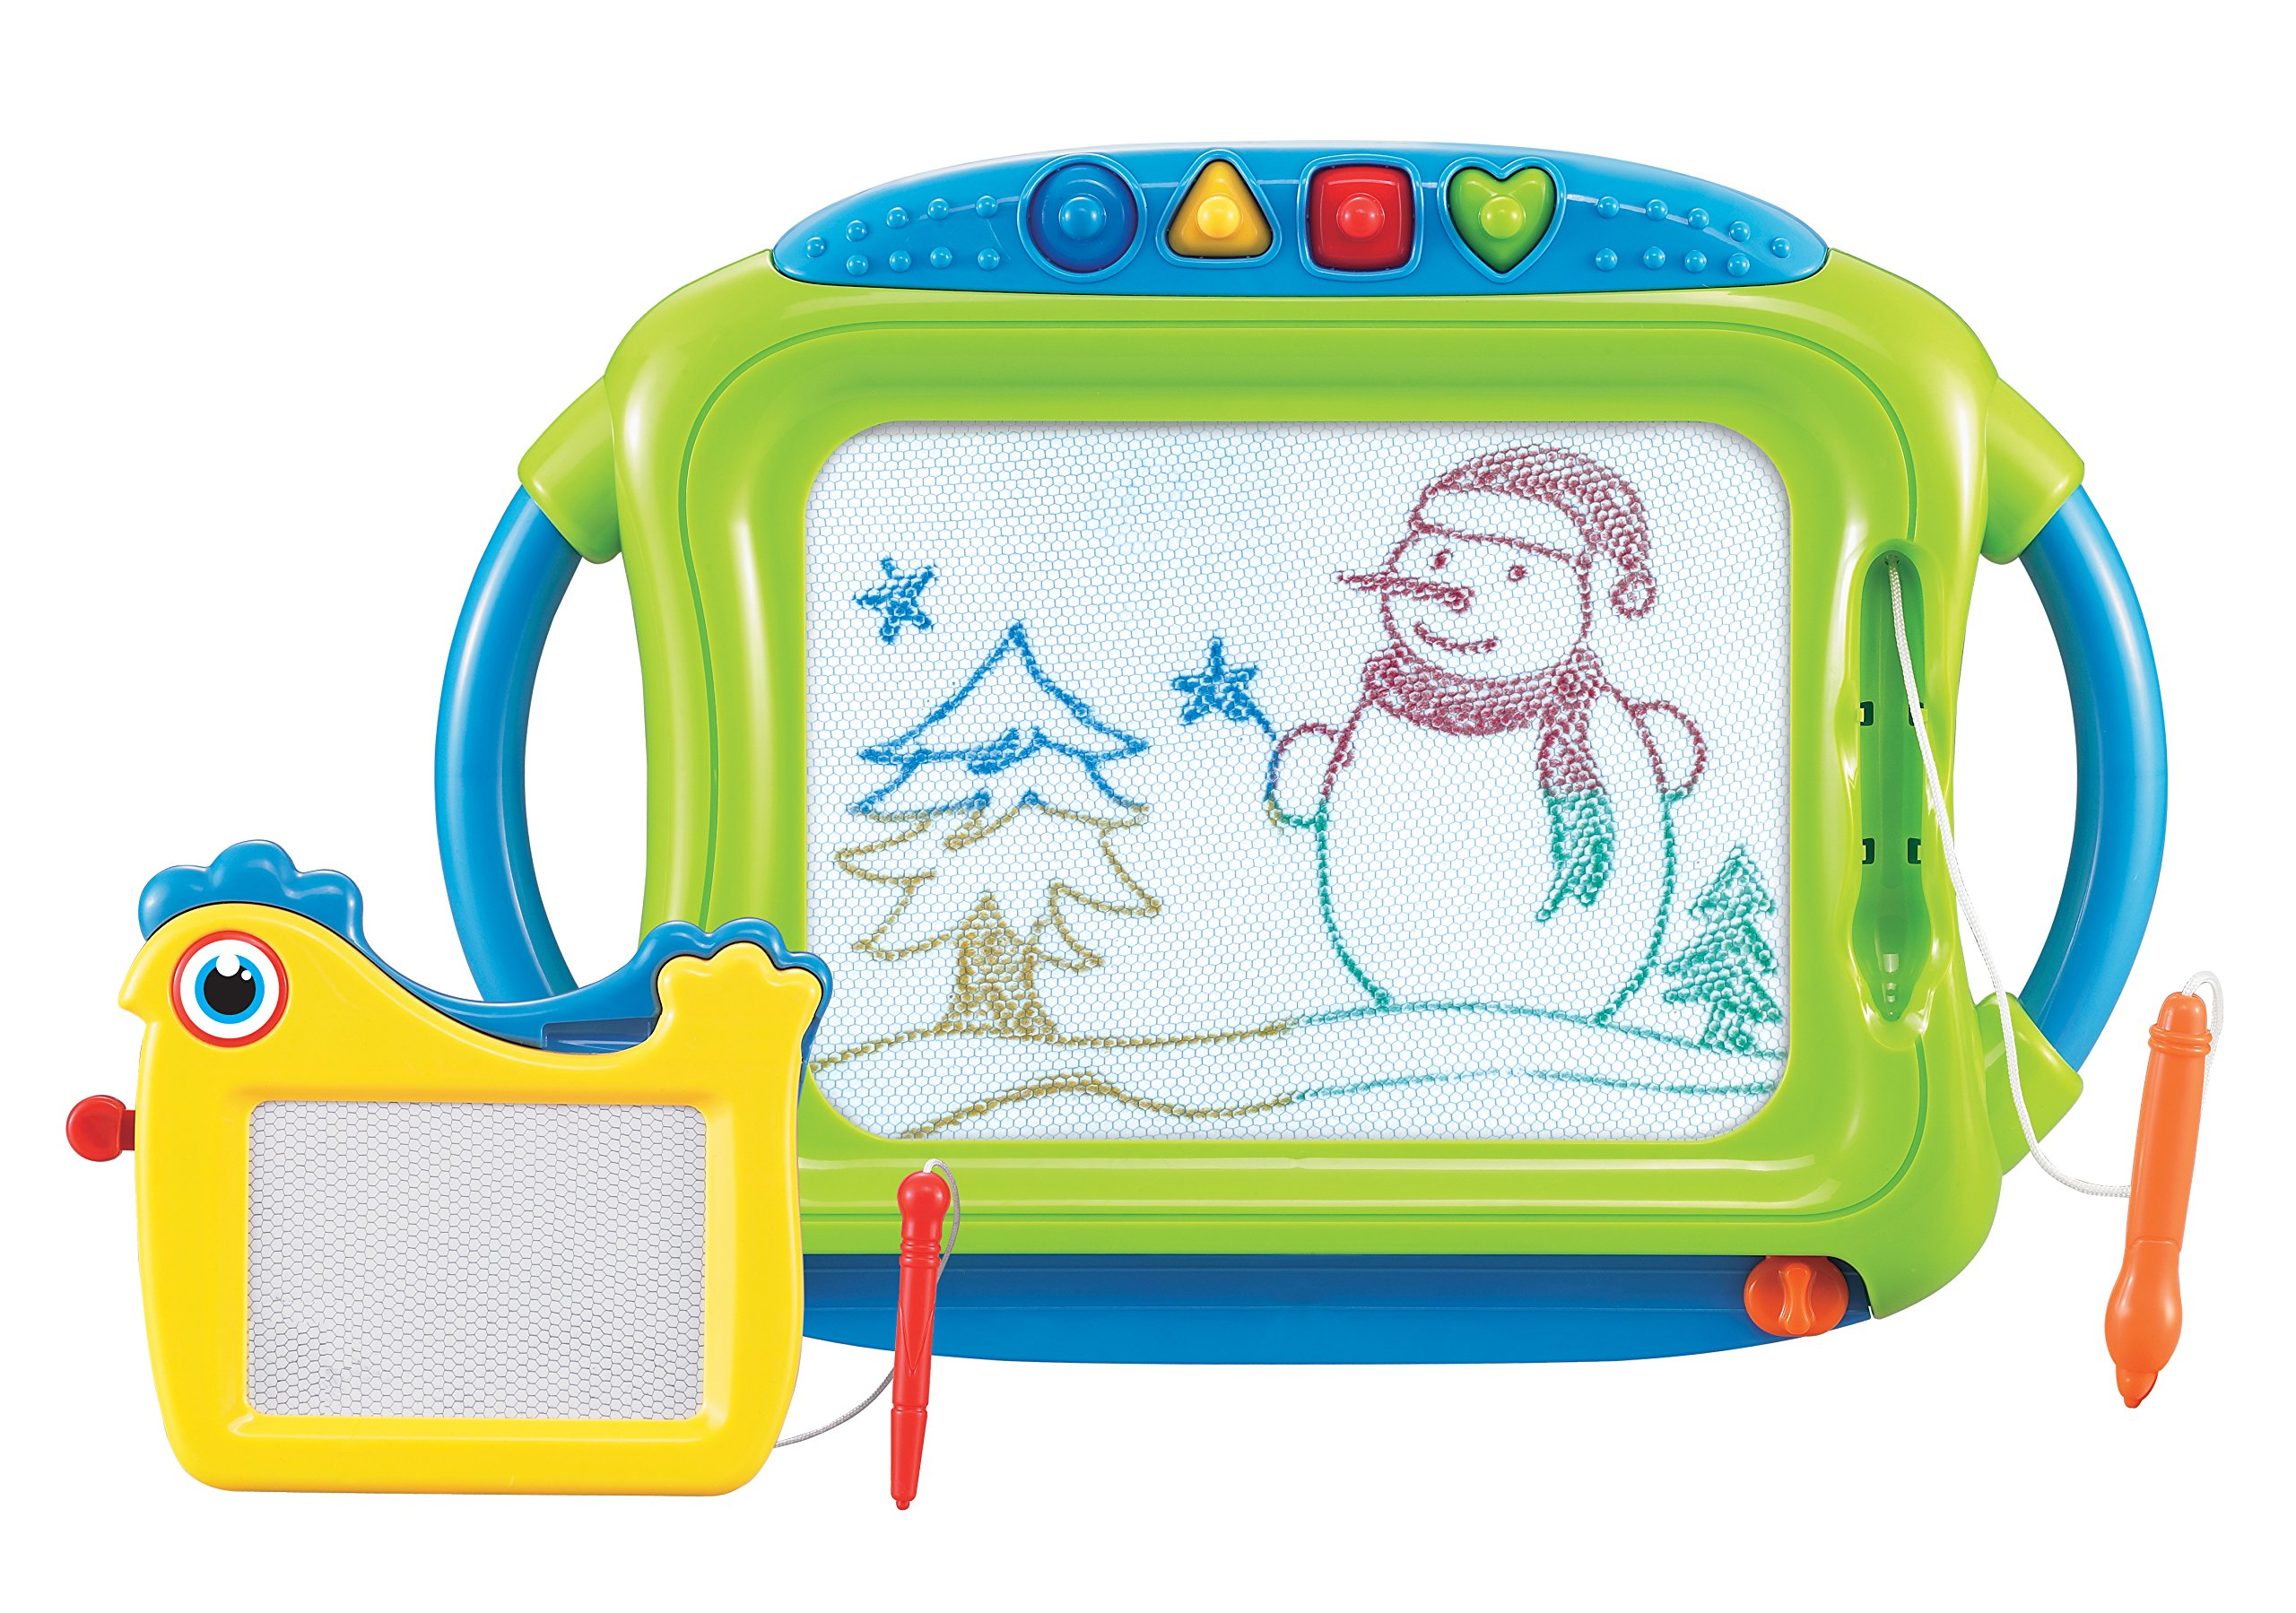 First Classroom Magnetic Color Doodle Fun Drawing Board with Mini Doodle